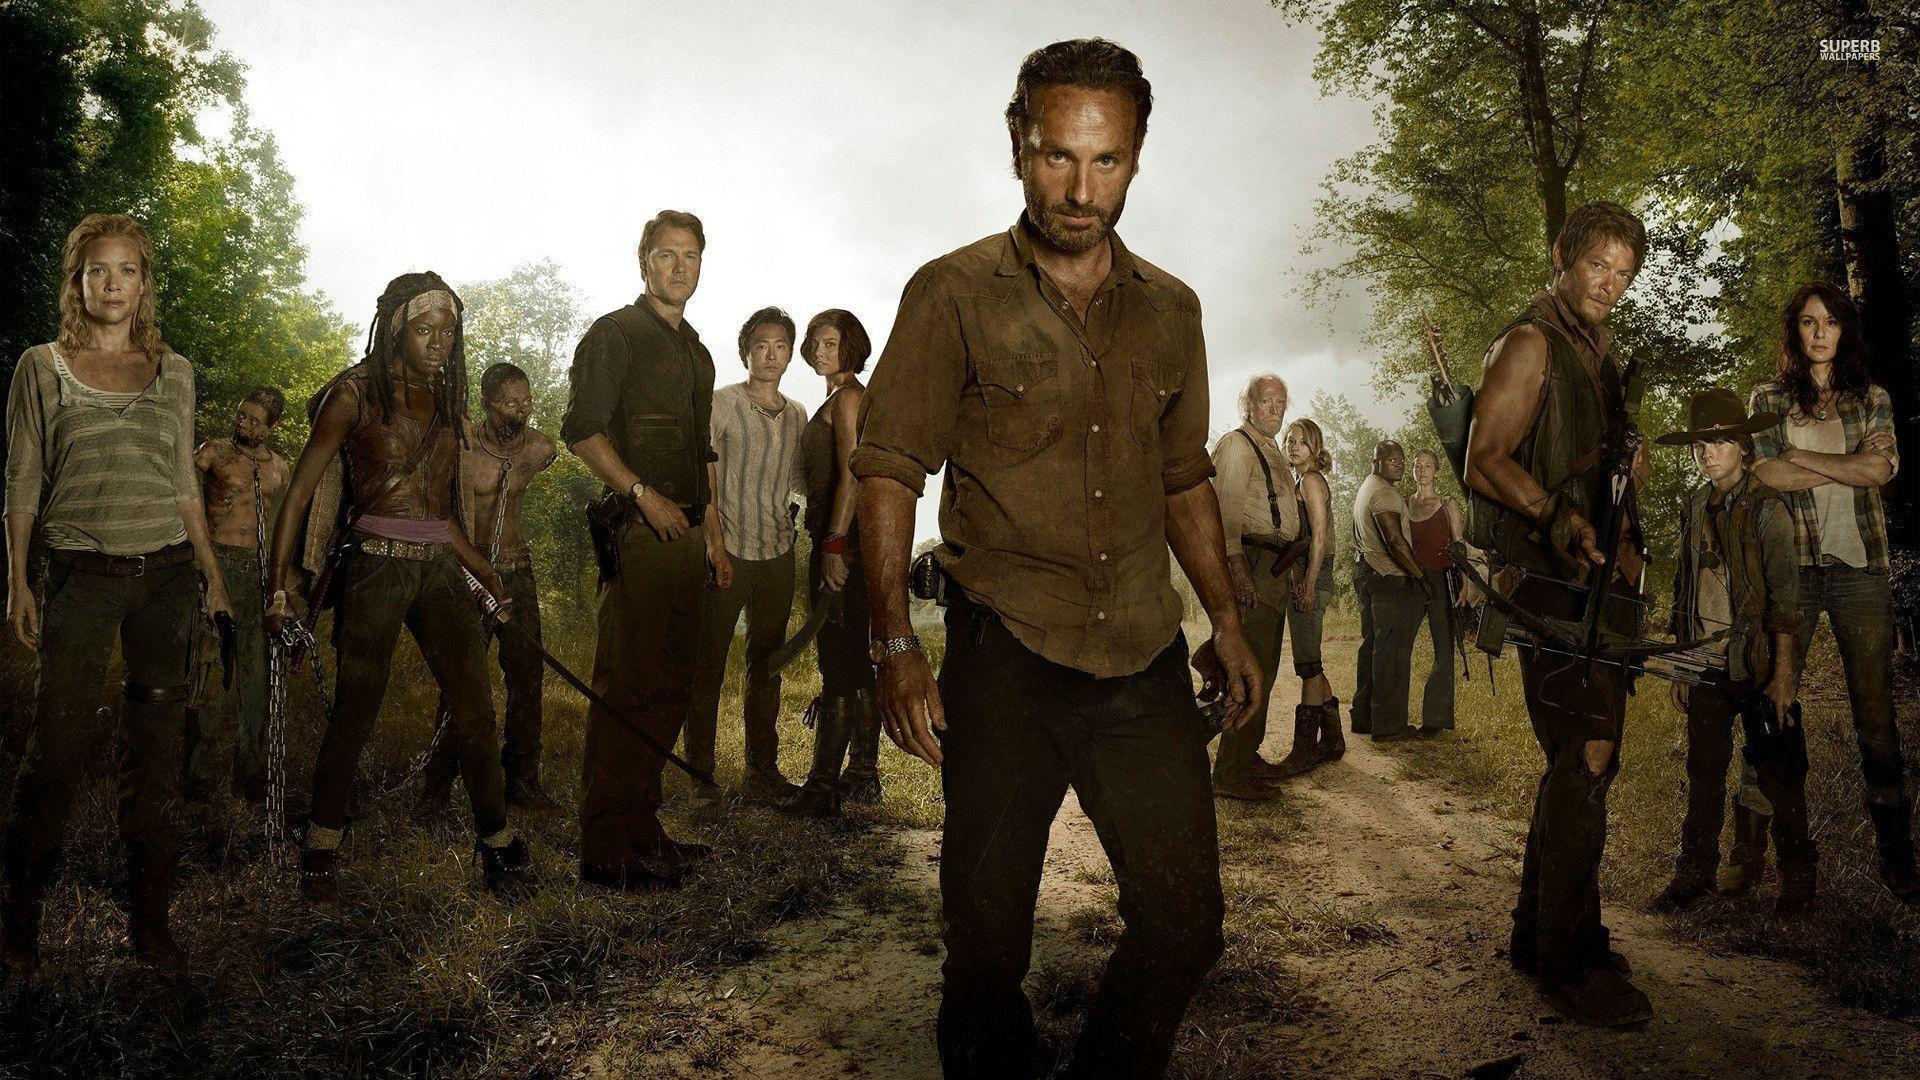 The Walking Dead wallpaper - TV Show wallpapers - #